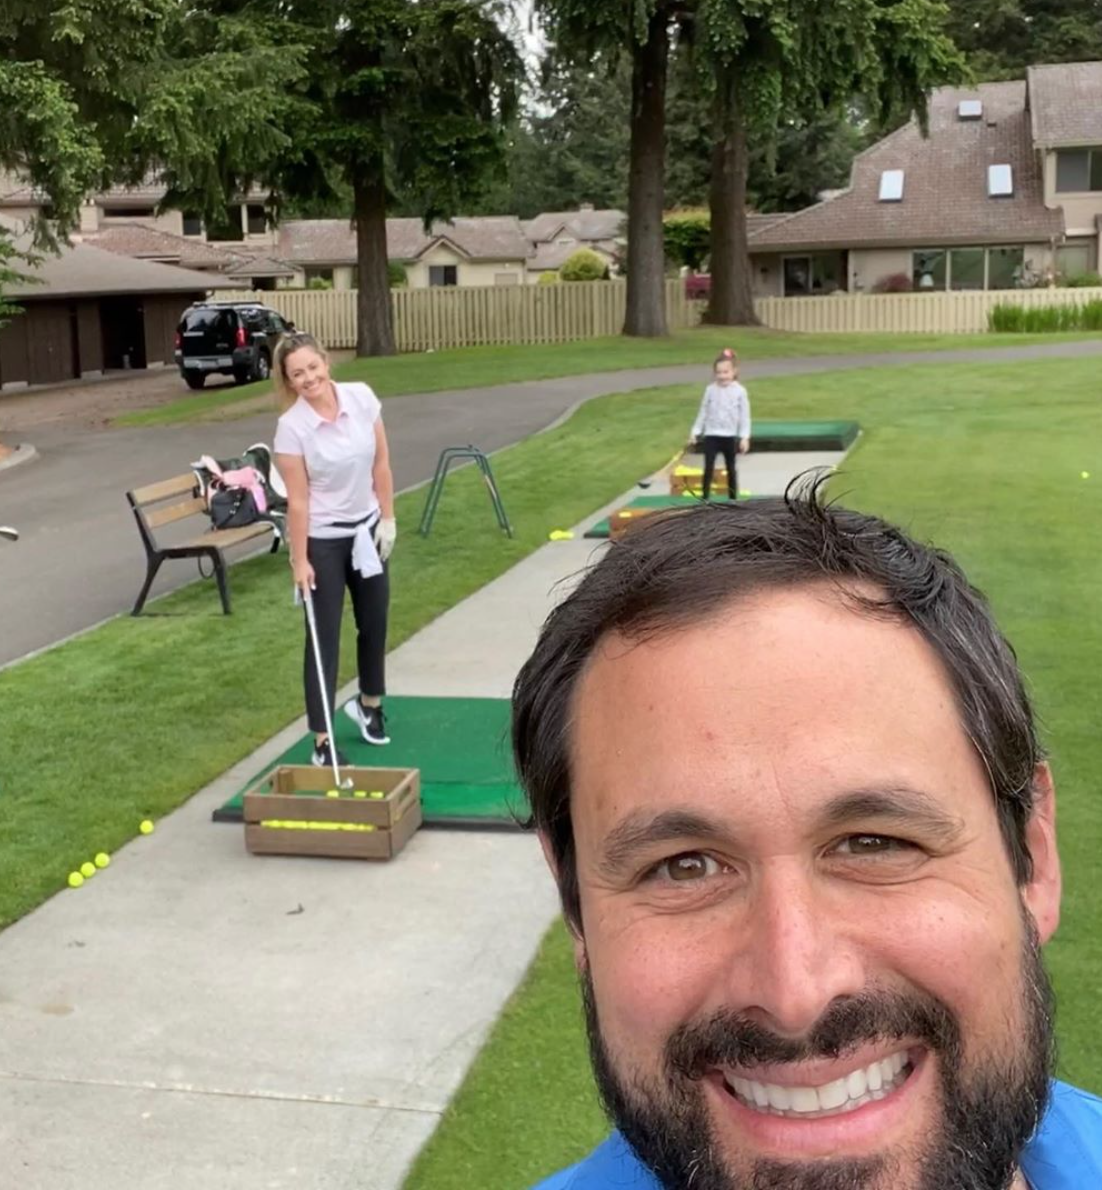 Local couple Jason and Molly Mesnick found love on Season 13 of ABC's 'The Bachelor.' Married more than 10 years, the enjoy playing golf and raising their two kids in the PNW. (Image: Jason and Molly Mesnick)